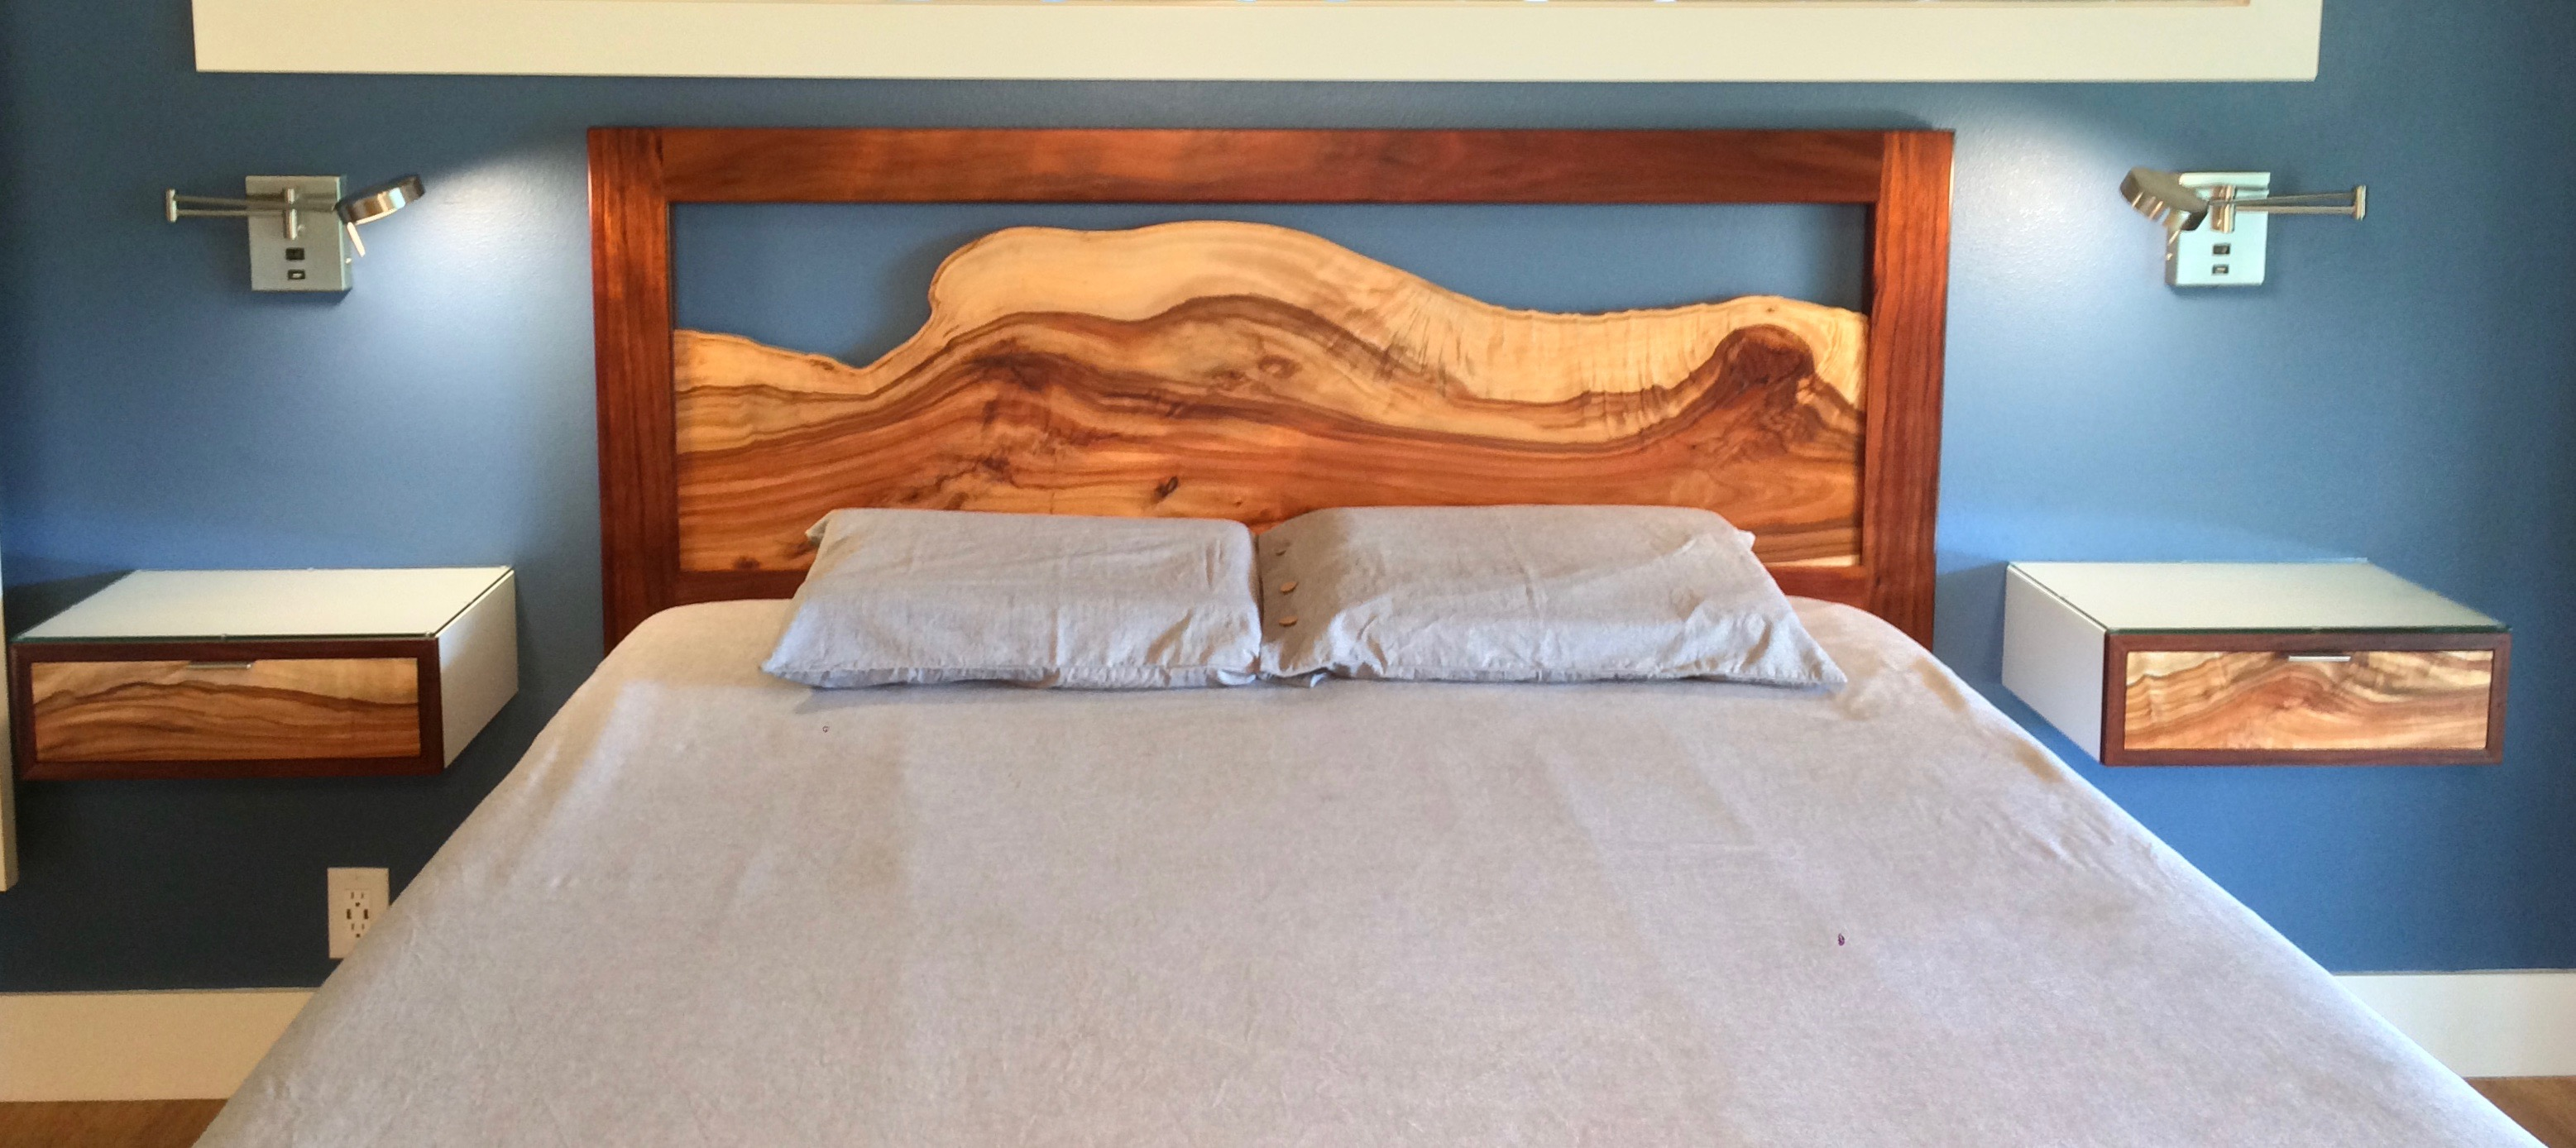 oa Headboard and Night stands